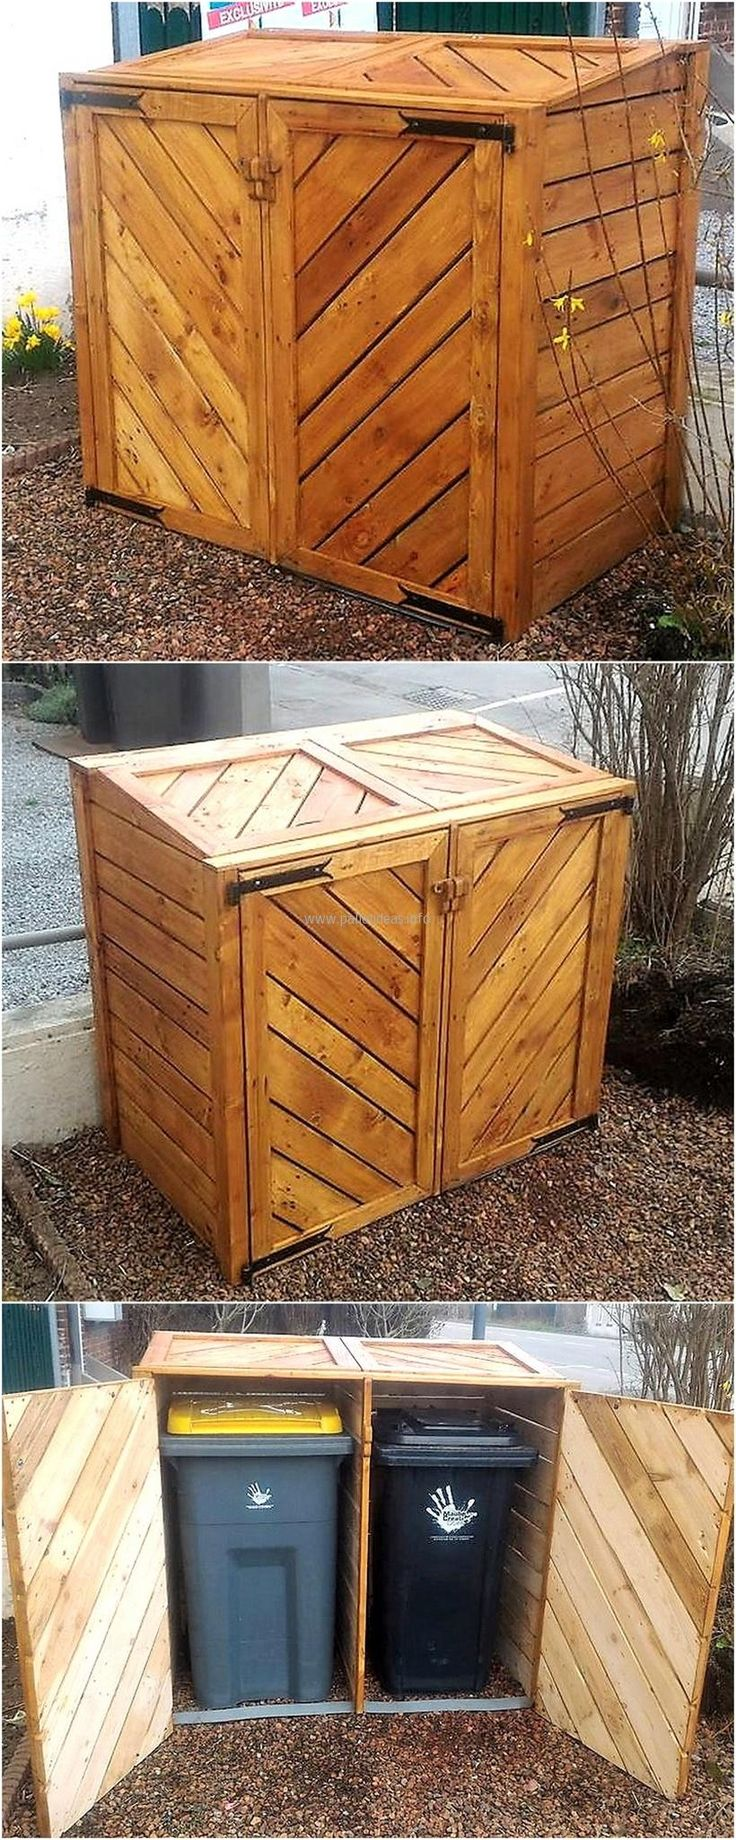 If anyone thinks that trash cans look bad when they are placed visibly, then here is an idea to cover them with the help of the pallets. The pallets will work great in covering the garbage cans and make the area look great.